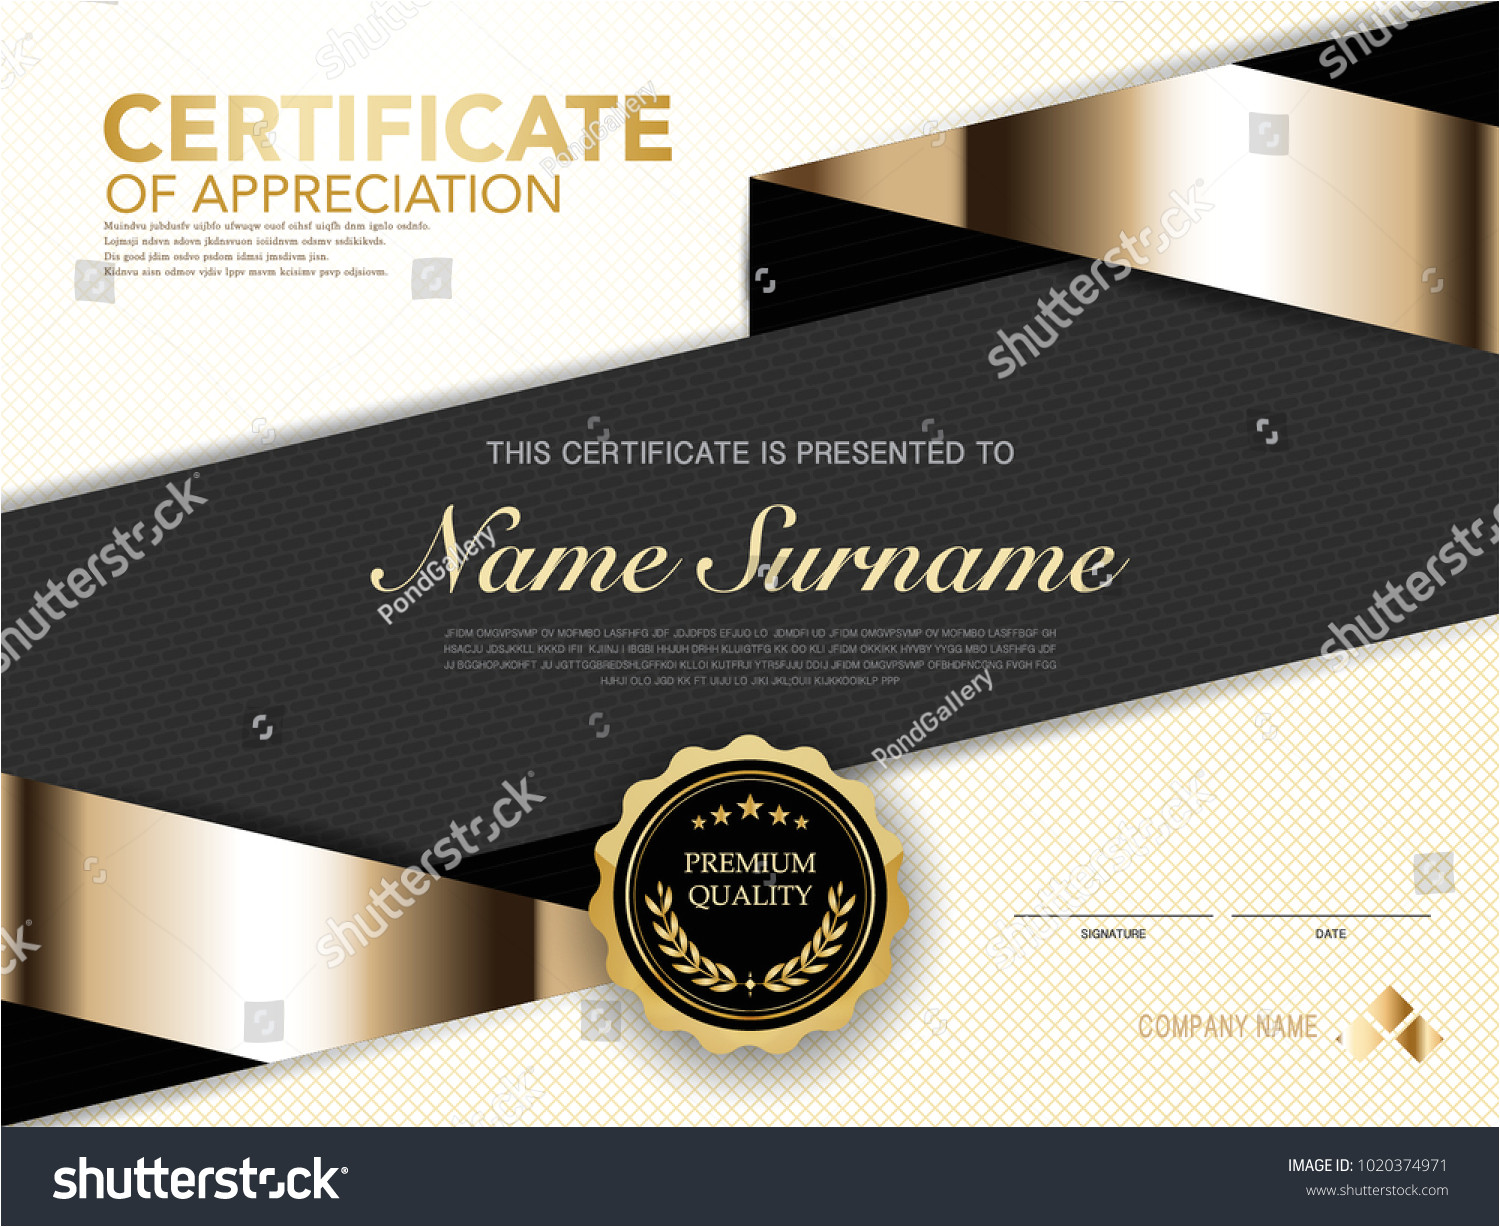 stock vector diploma certificate template black and gold color with luxury and modern style vector image 1020374971 jpg